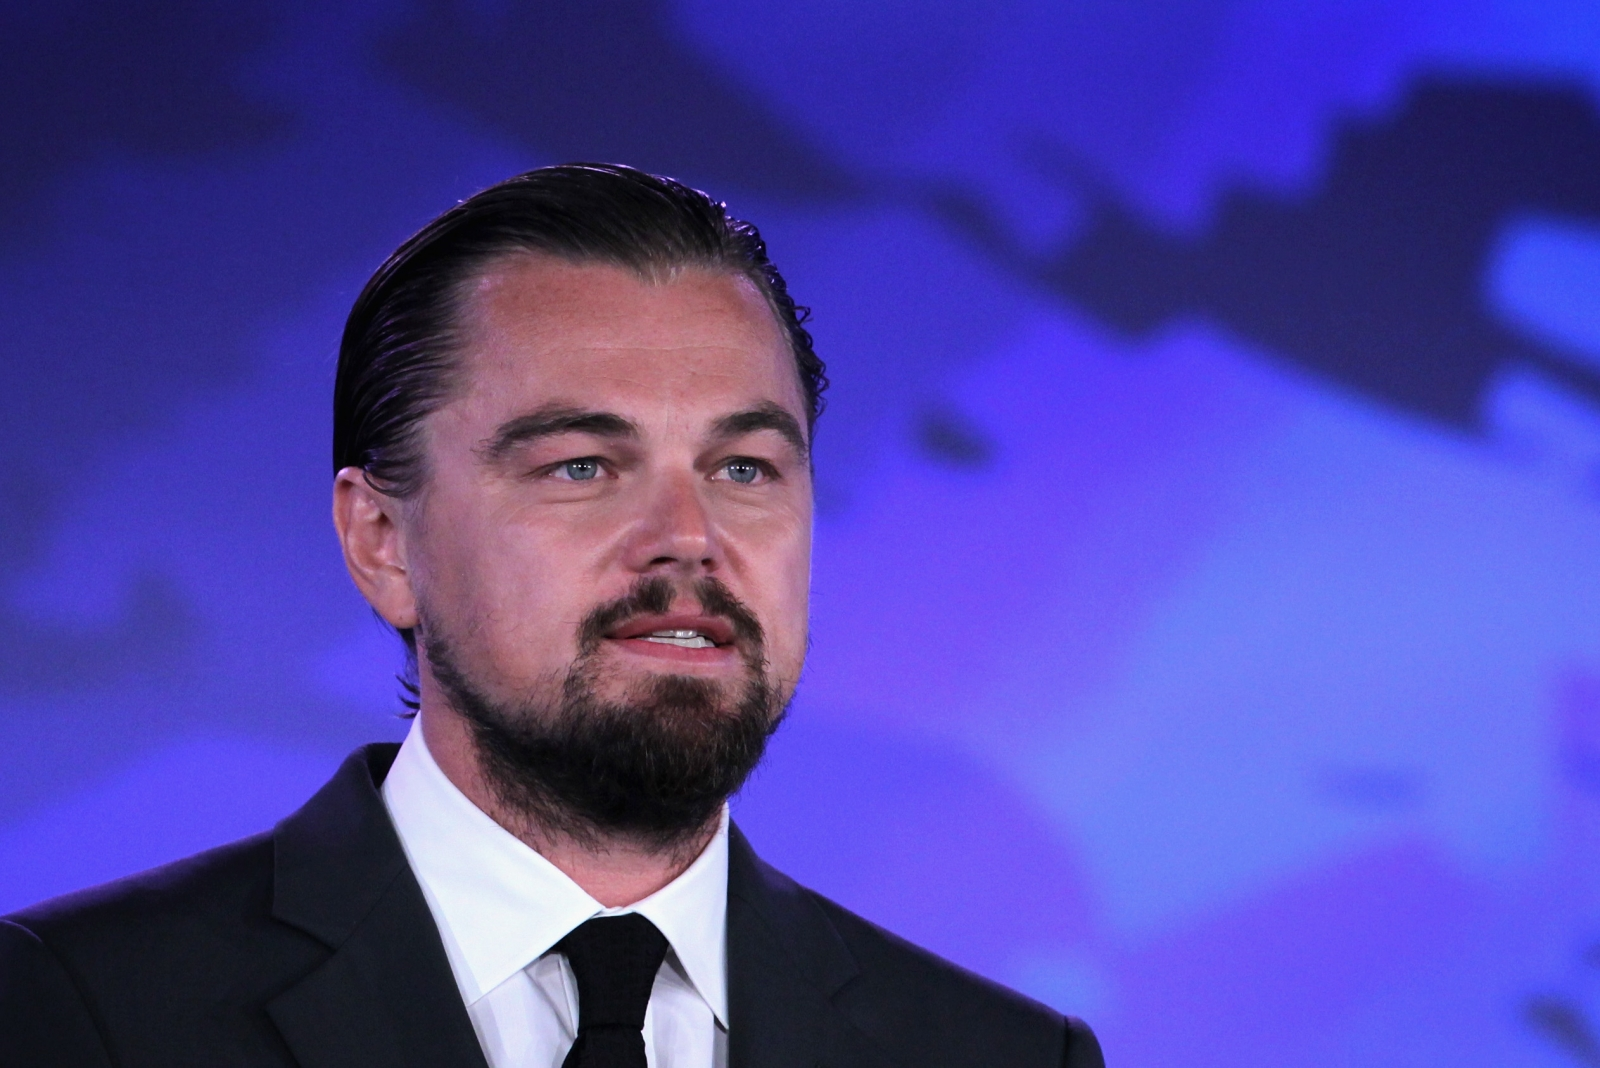 Actor Leonardo DiCaprio speaks at the 'Our Ocean' conference in Washington DC